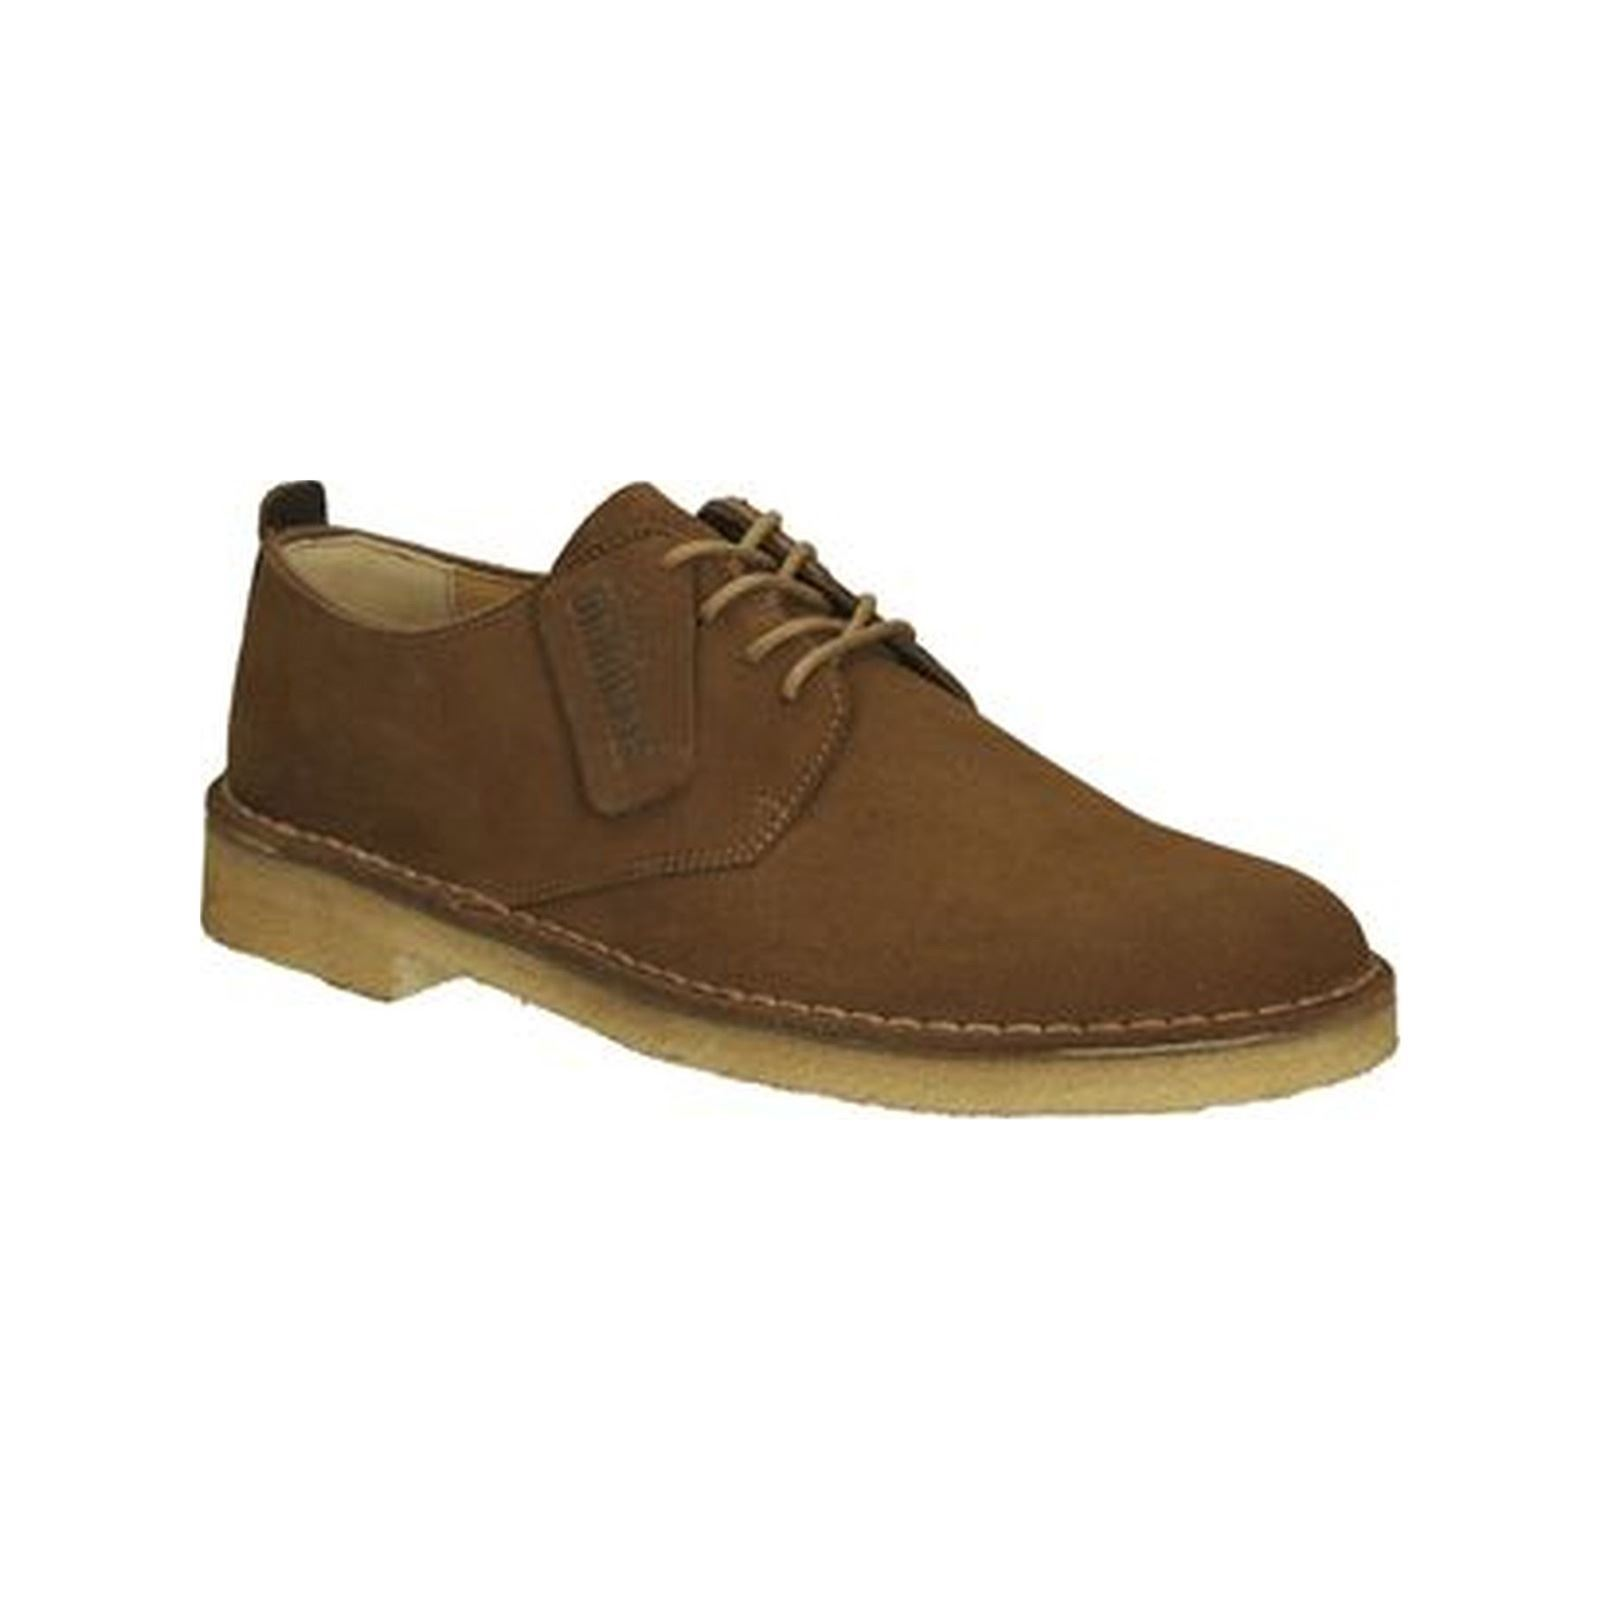 London Camel Desert Derbies Brandalley Clarks Originals YOEqgg